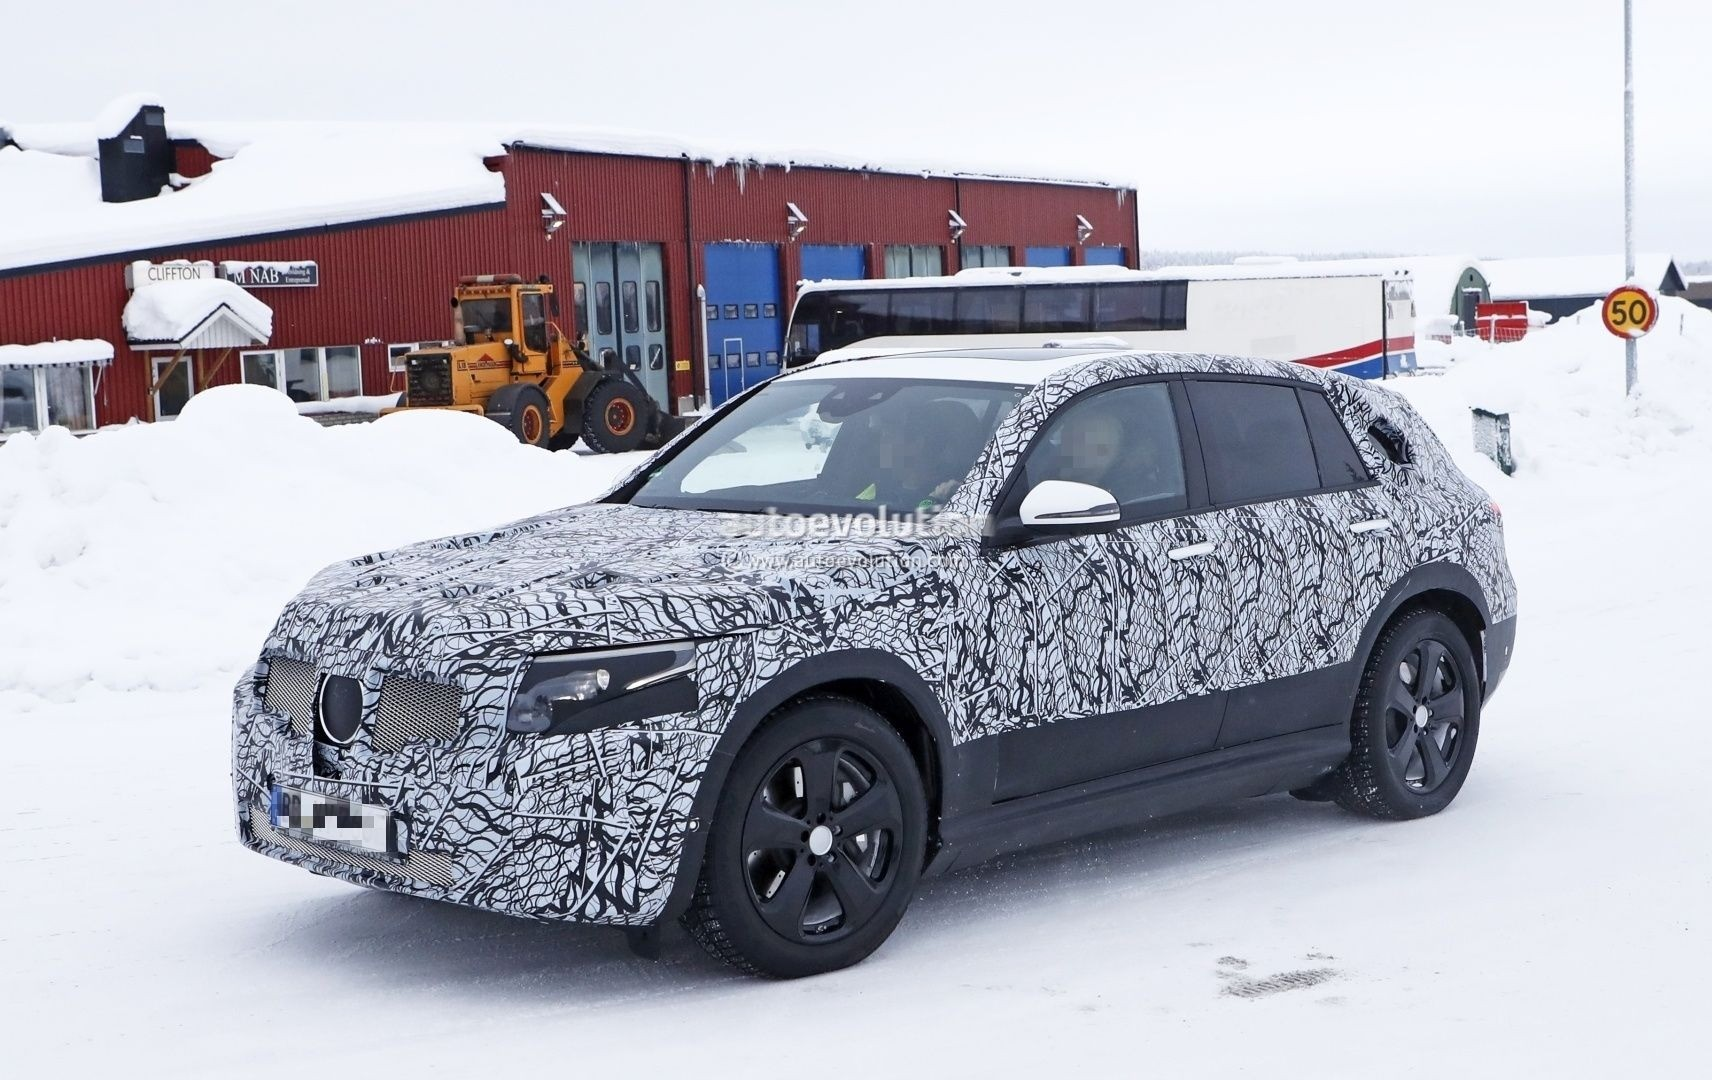 spyshots-2020-mercedes-benz-eqc-plays-the-compact-electric-suv-card_4.jpg